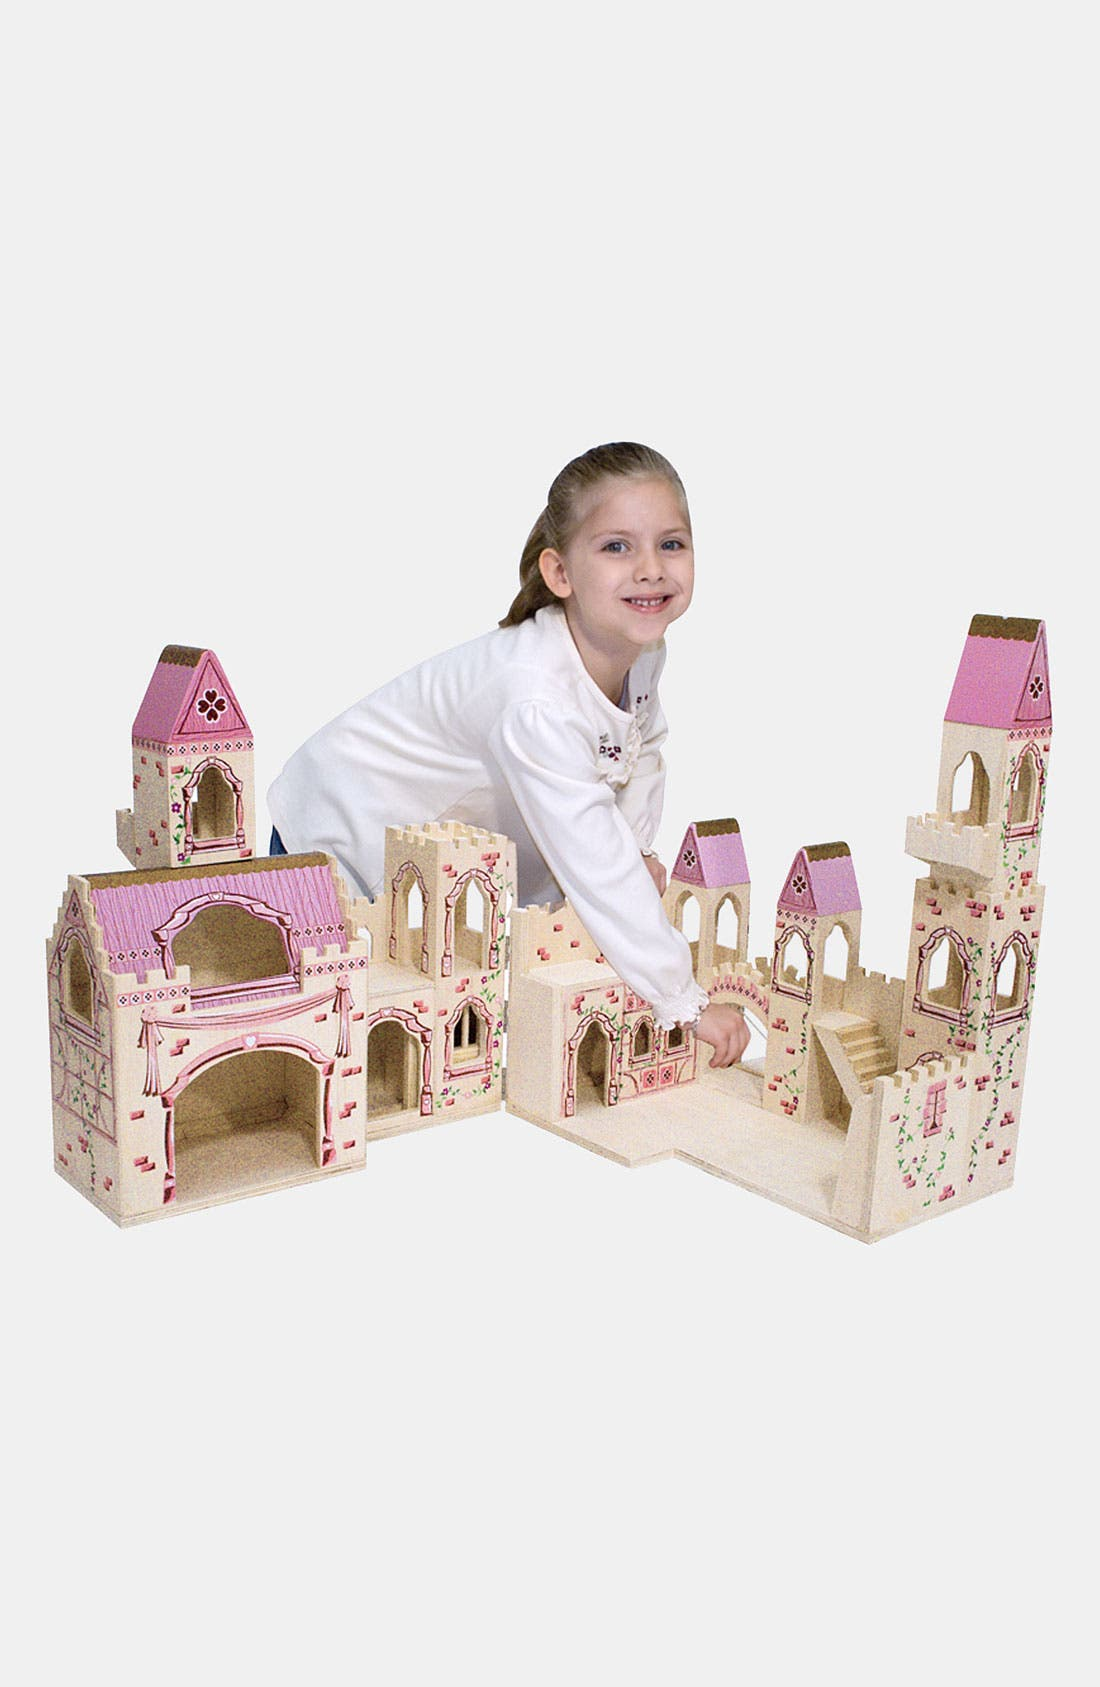 Alternate Image 1 Selected - Melissa & Doug Wood Play Castle